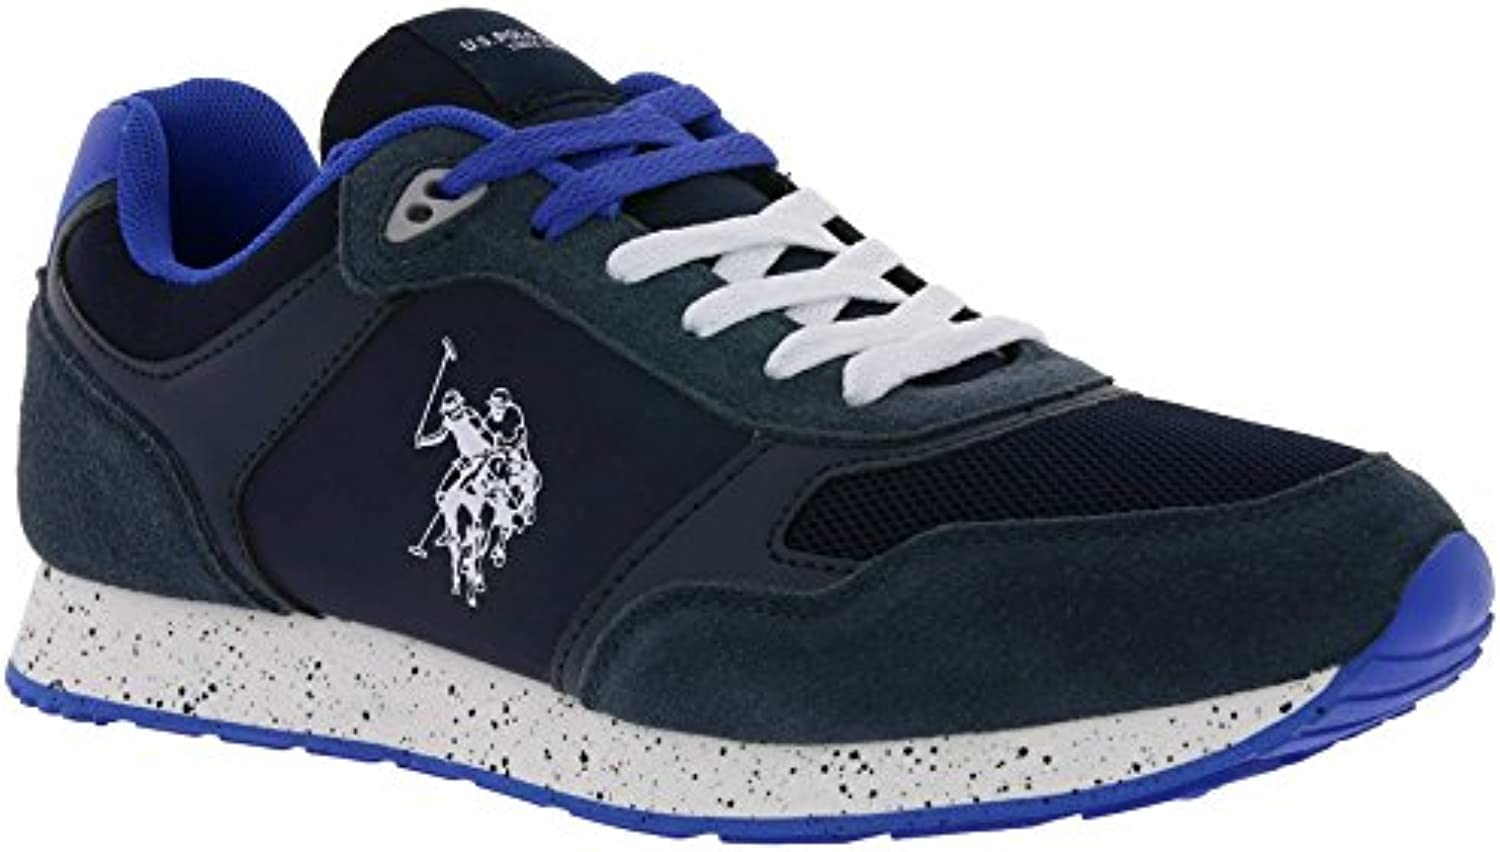 U.S. Polo Assn. FLASH4060S8/LT1 Sneakers Herren